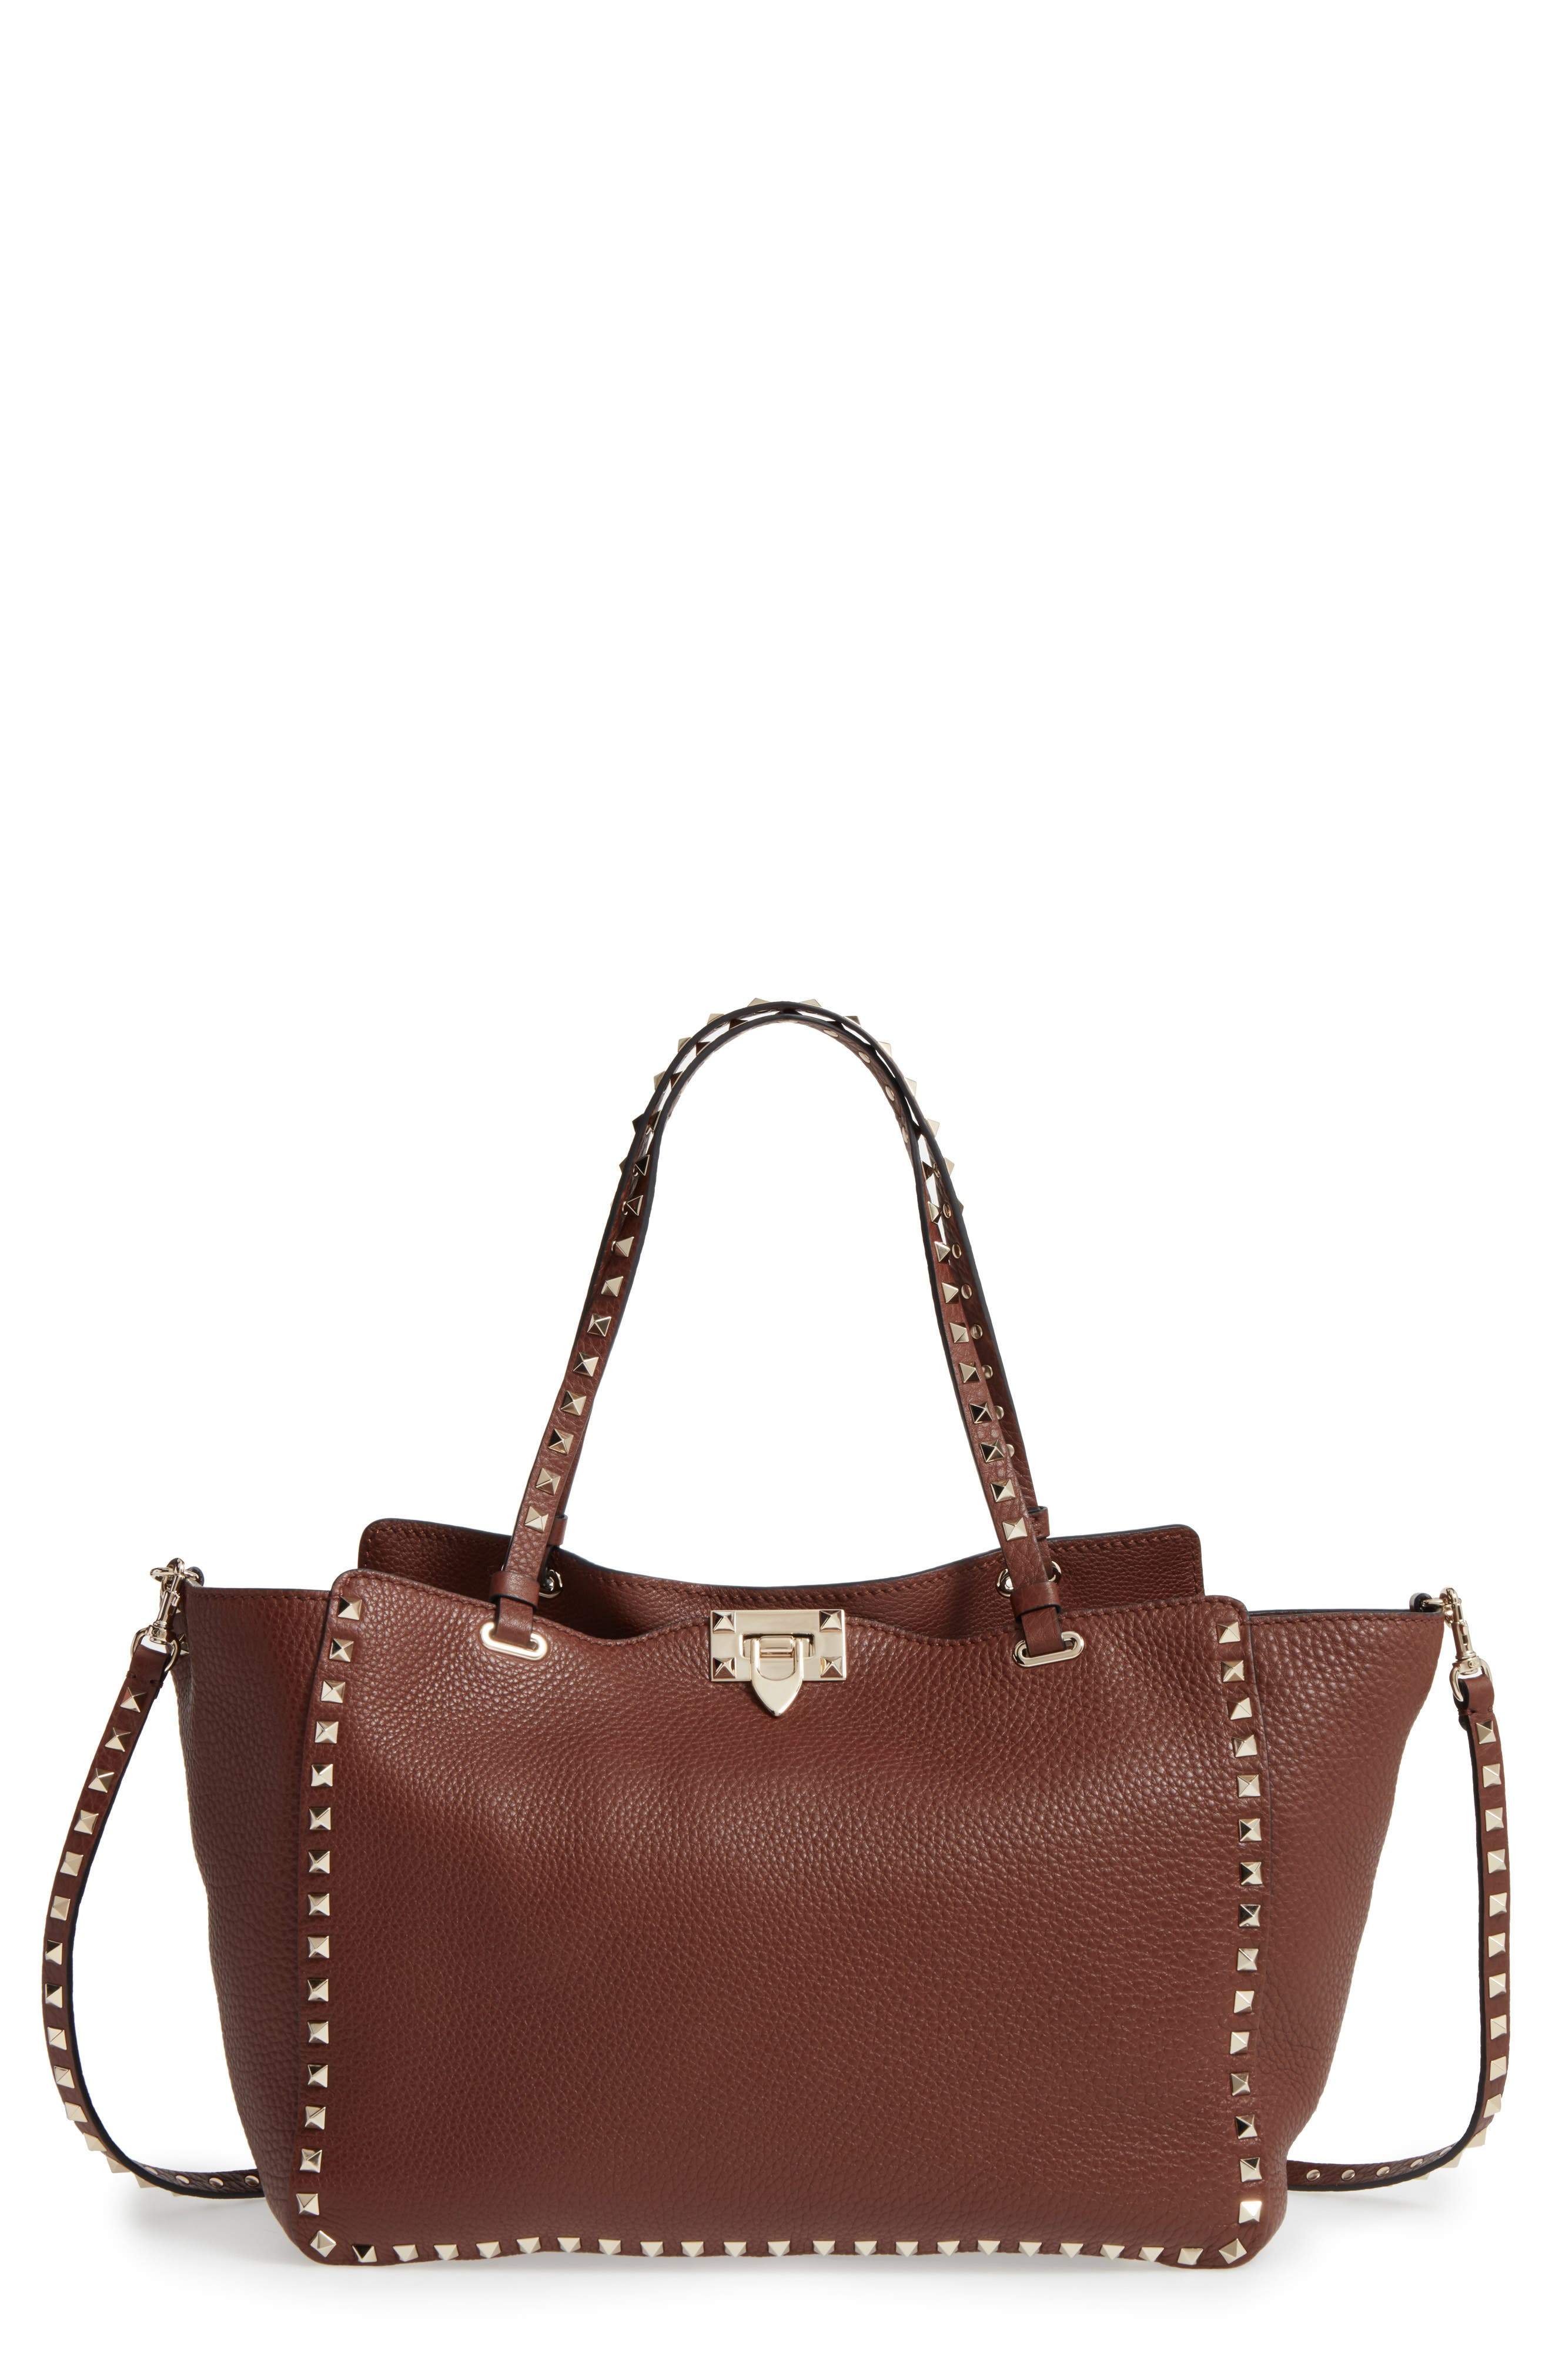 Alternate Image 1 Selected - Valentino 'Rockstud' Grained Calfskin Leather Tote